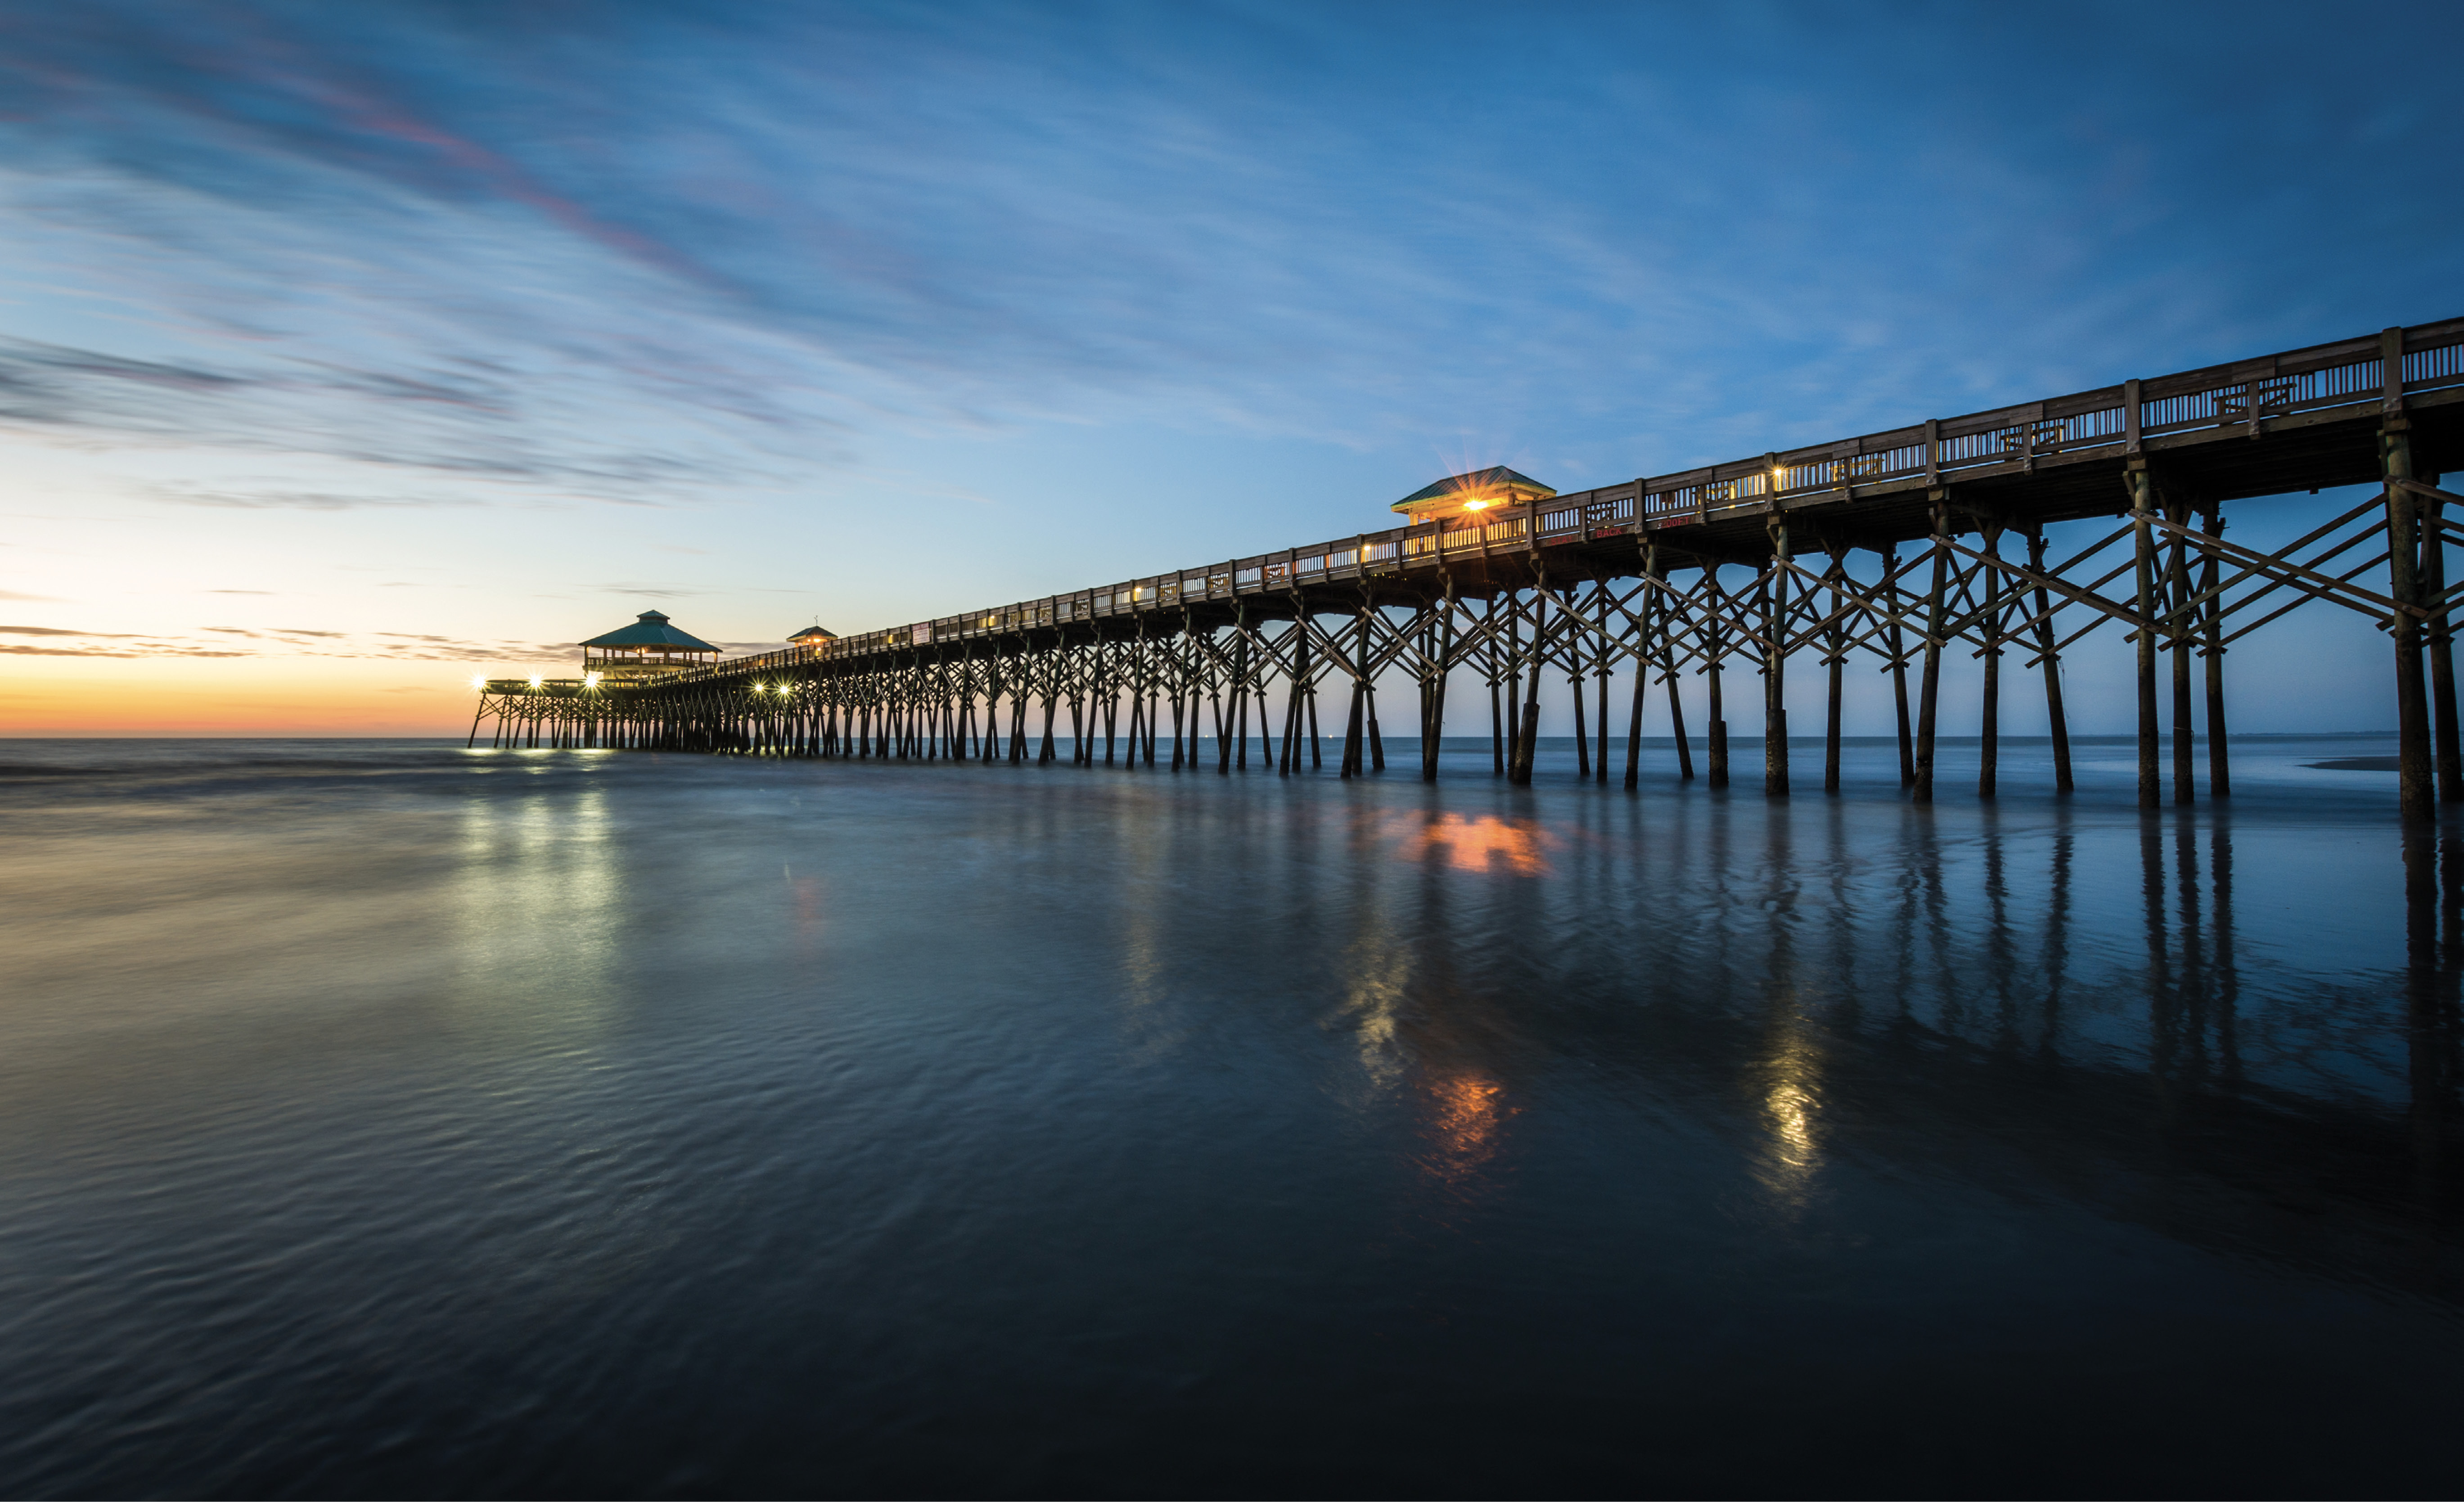 While there are plans to replace the 1,045-foot Edwin S. Taylor Fishing Pier, which opened on July 4, 1995, it will remain open to the public through the summer season.